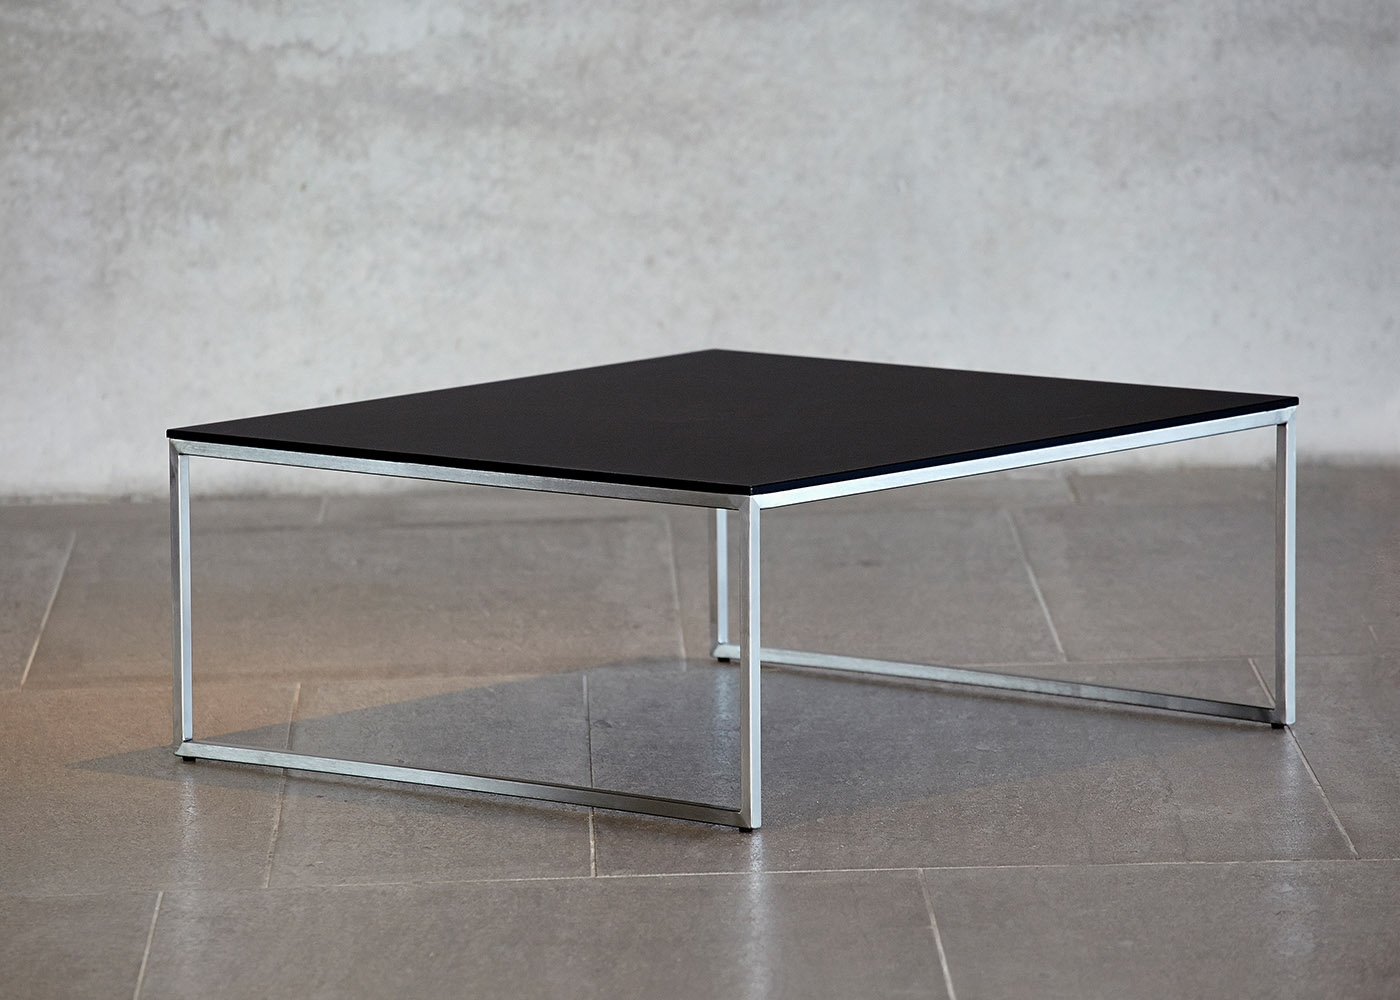 Table basse en verre blanc ou noir chez ksl living - Table carree en verre ...